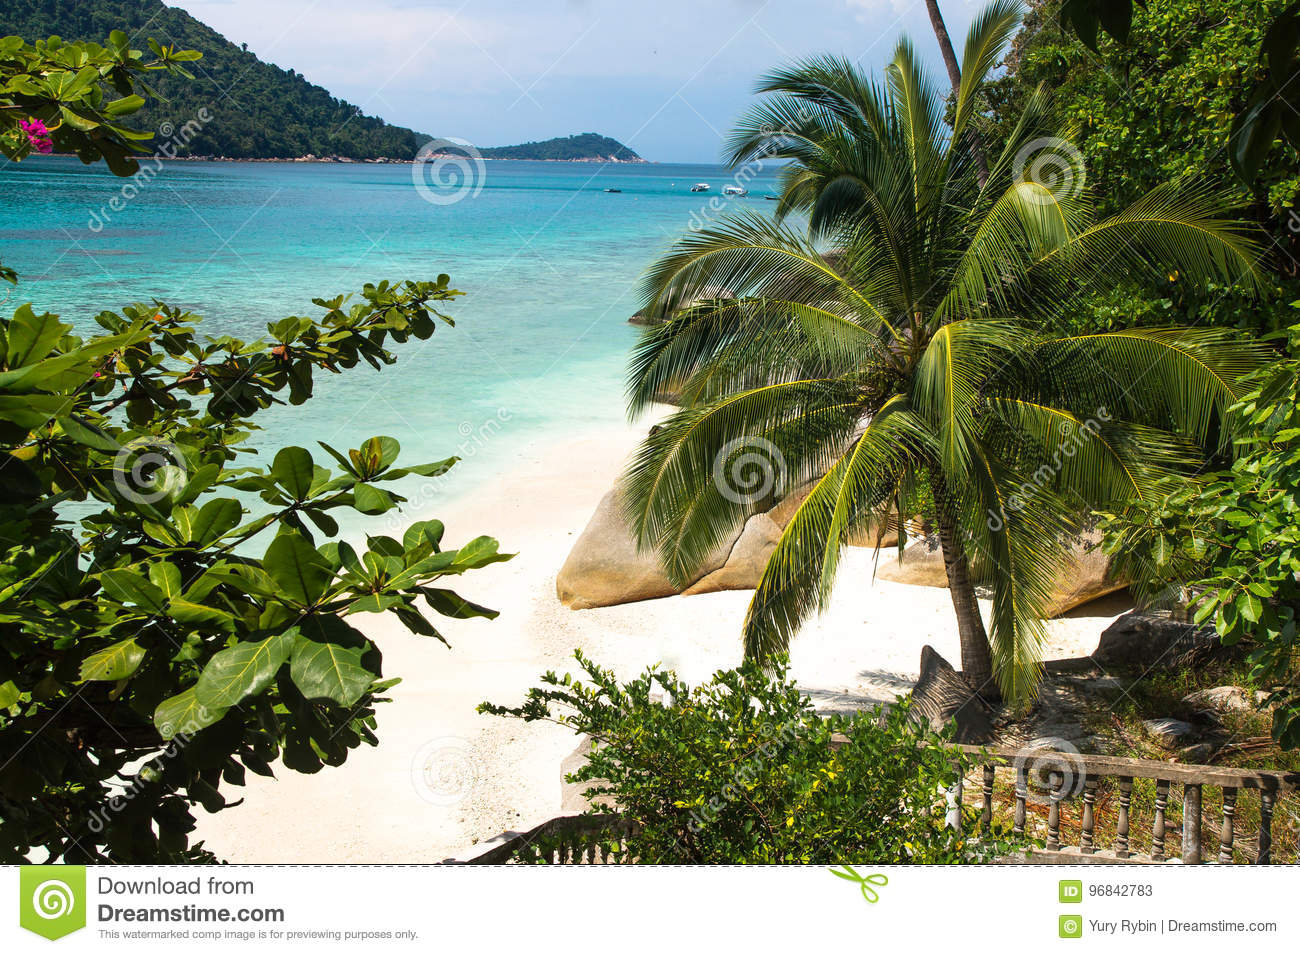 Palm tree and rocks on white sand beach at Pulau Perhentian, Mal